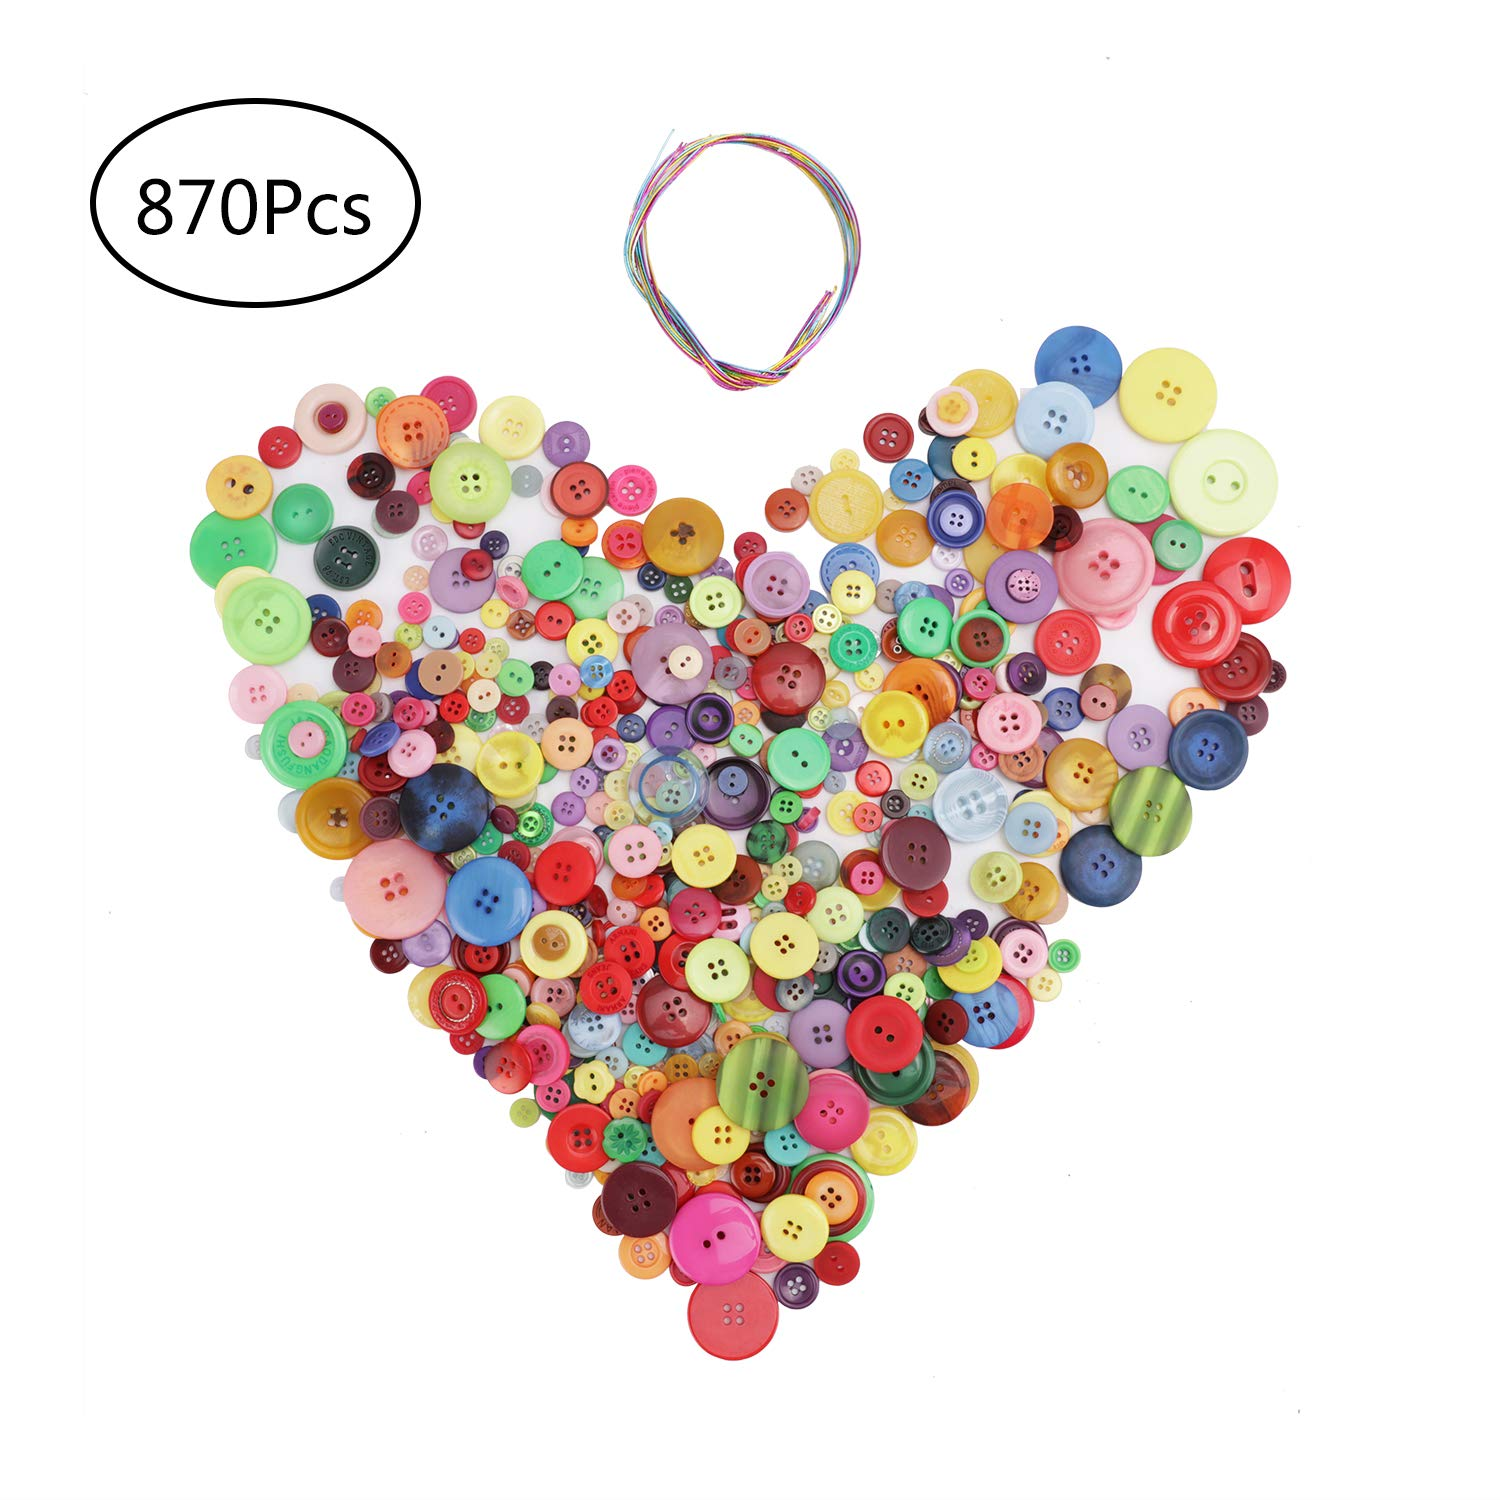 Sock Puppets BUMPER Pack of Craft Buttons Counting Crochet 1000g of Assorted Colours and Sizes Colour or Size Sorting Knitting Fantastic for all craft activities Collage